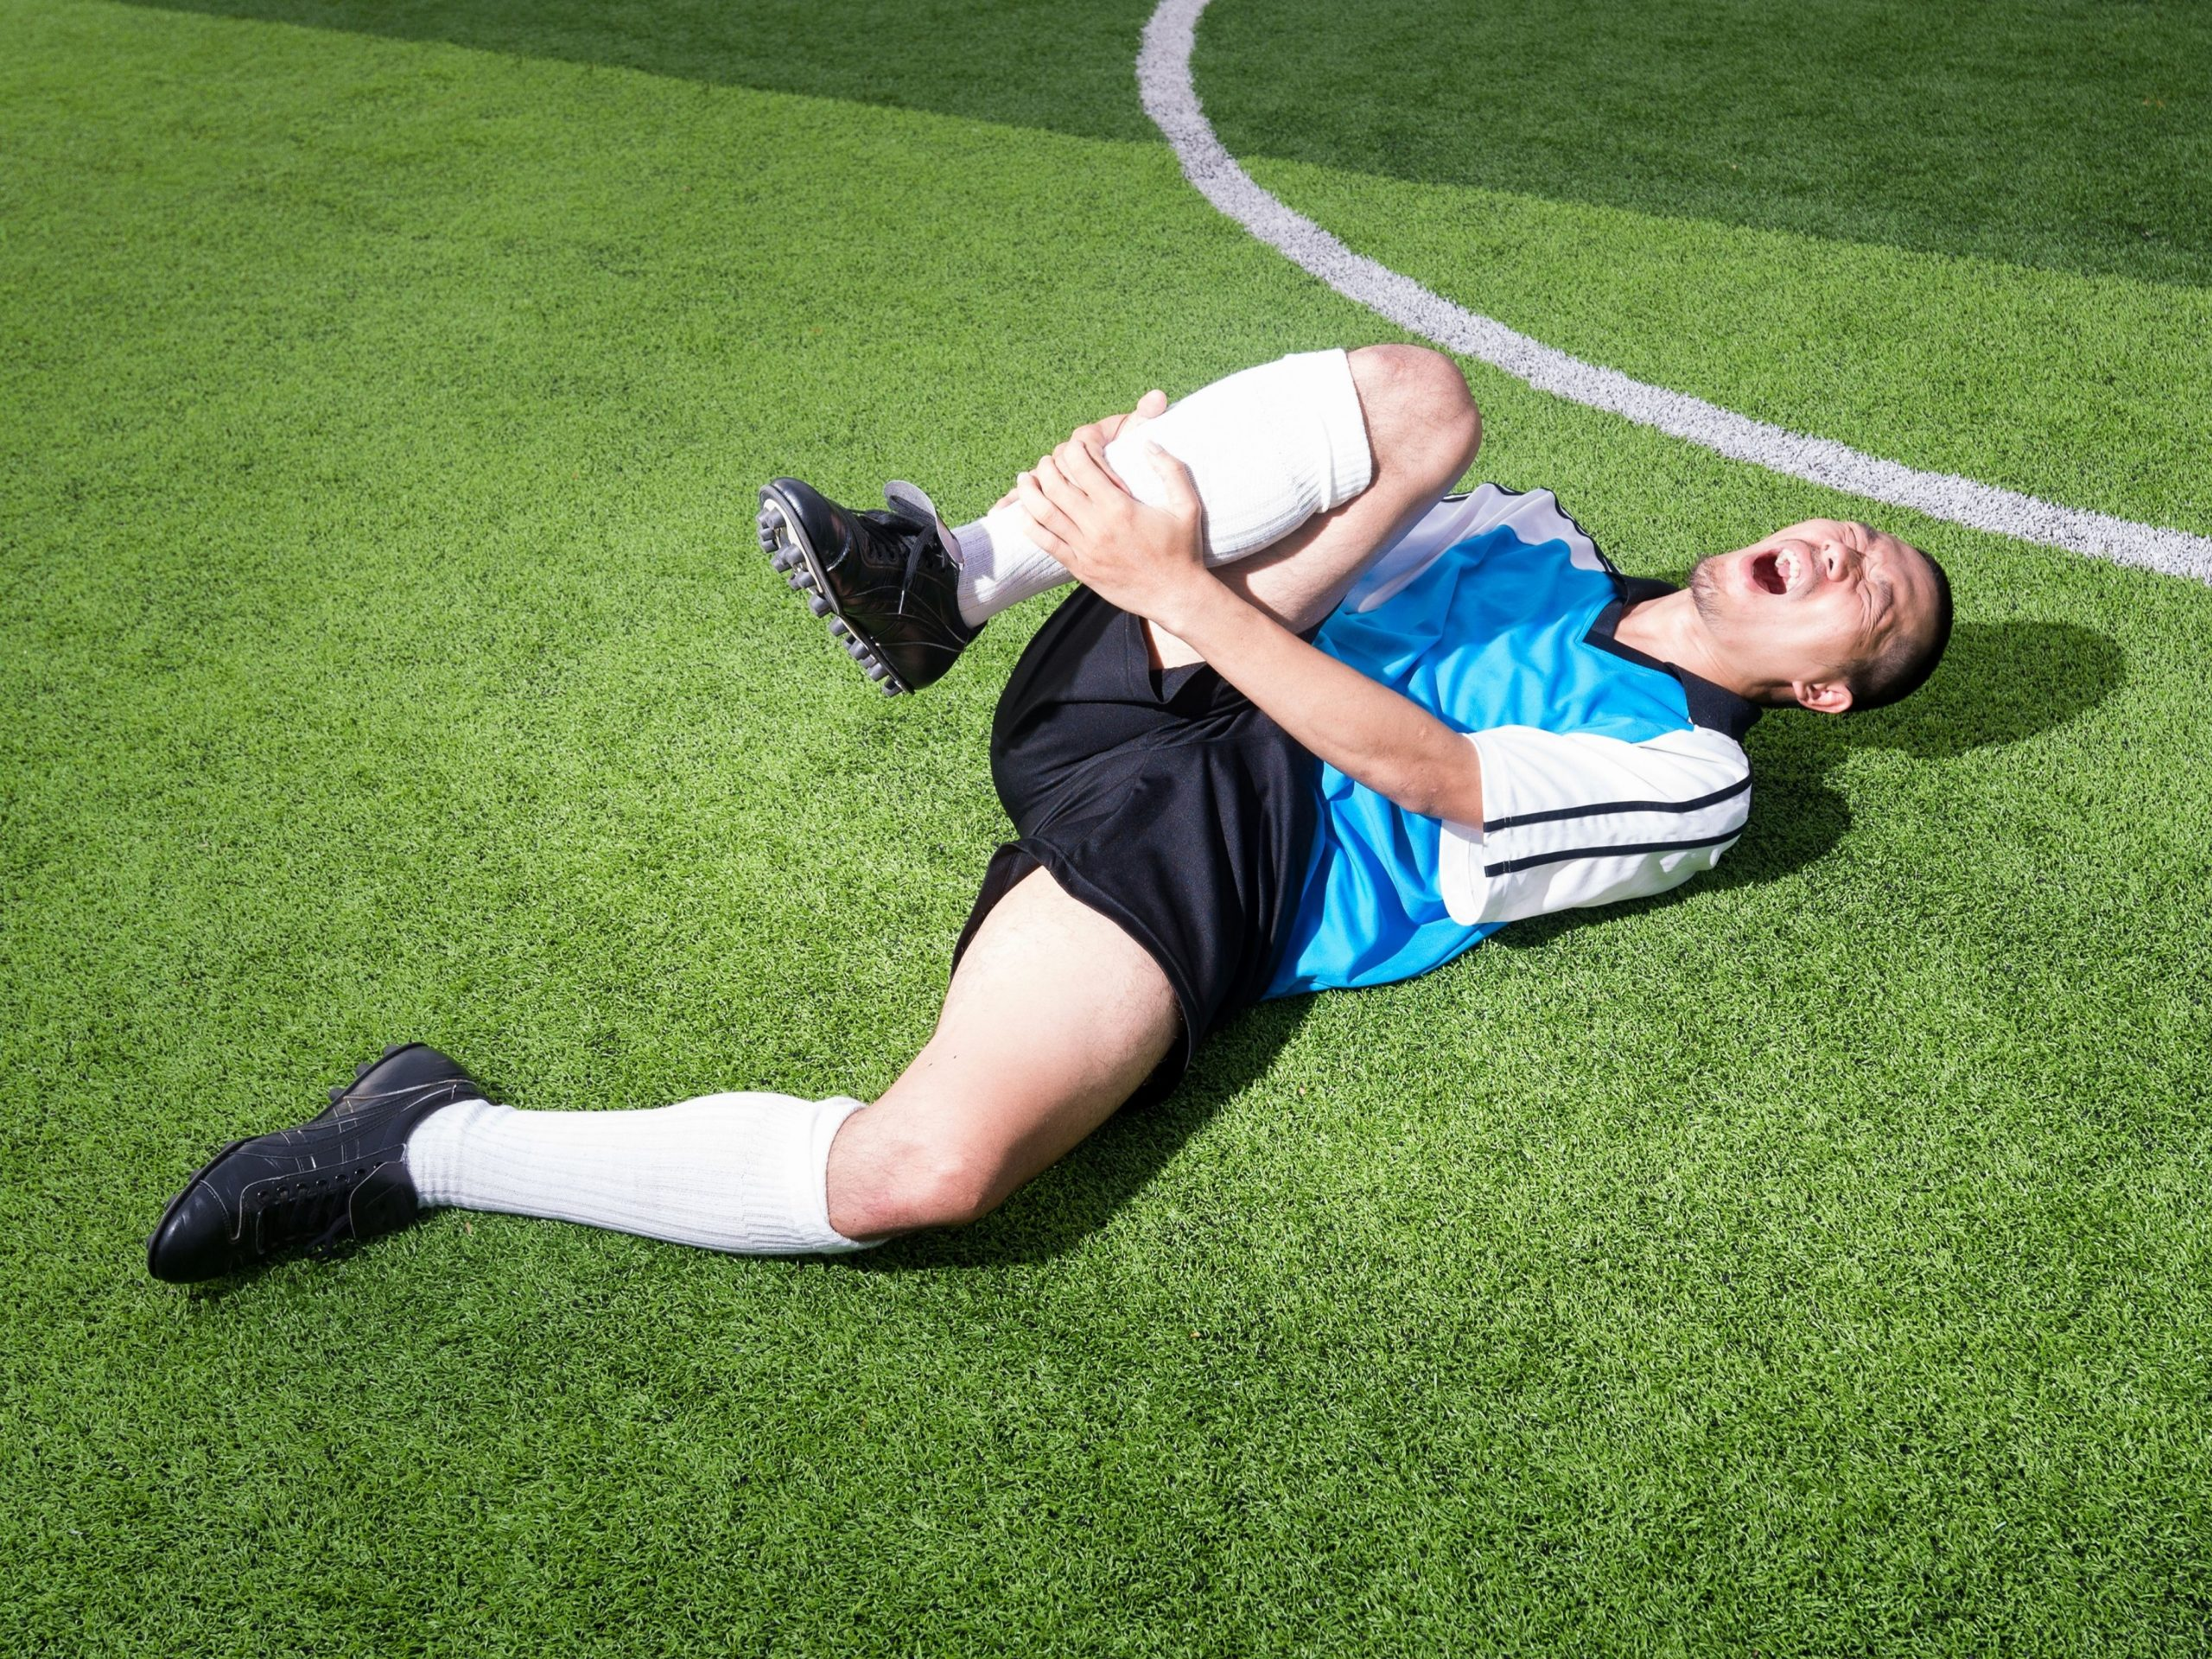 Preventing Football Injuries – easy ways to look after yourself